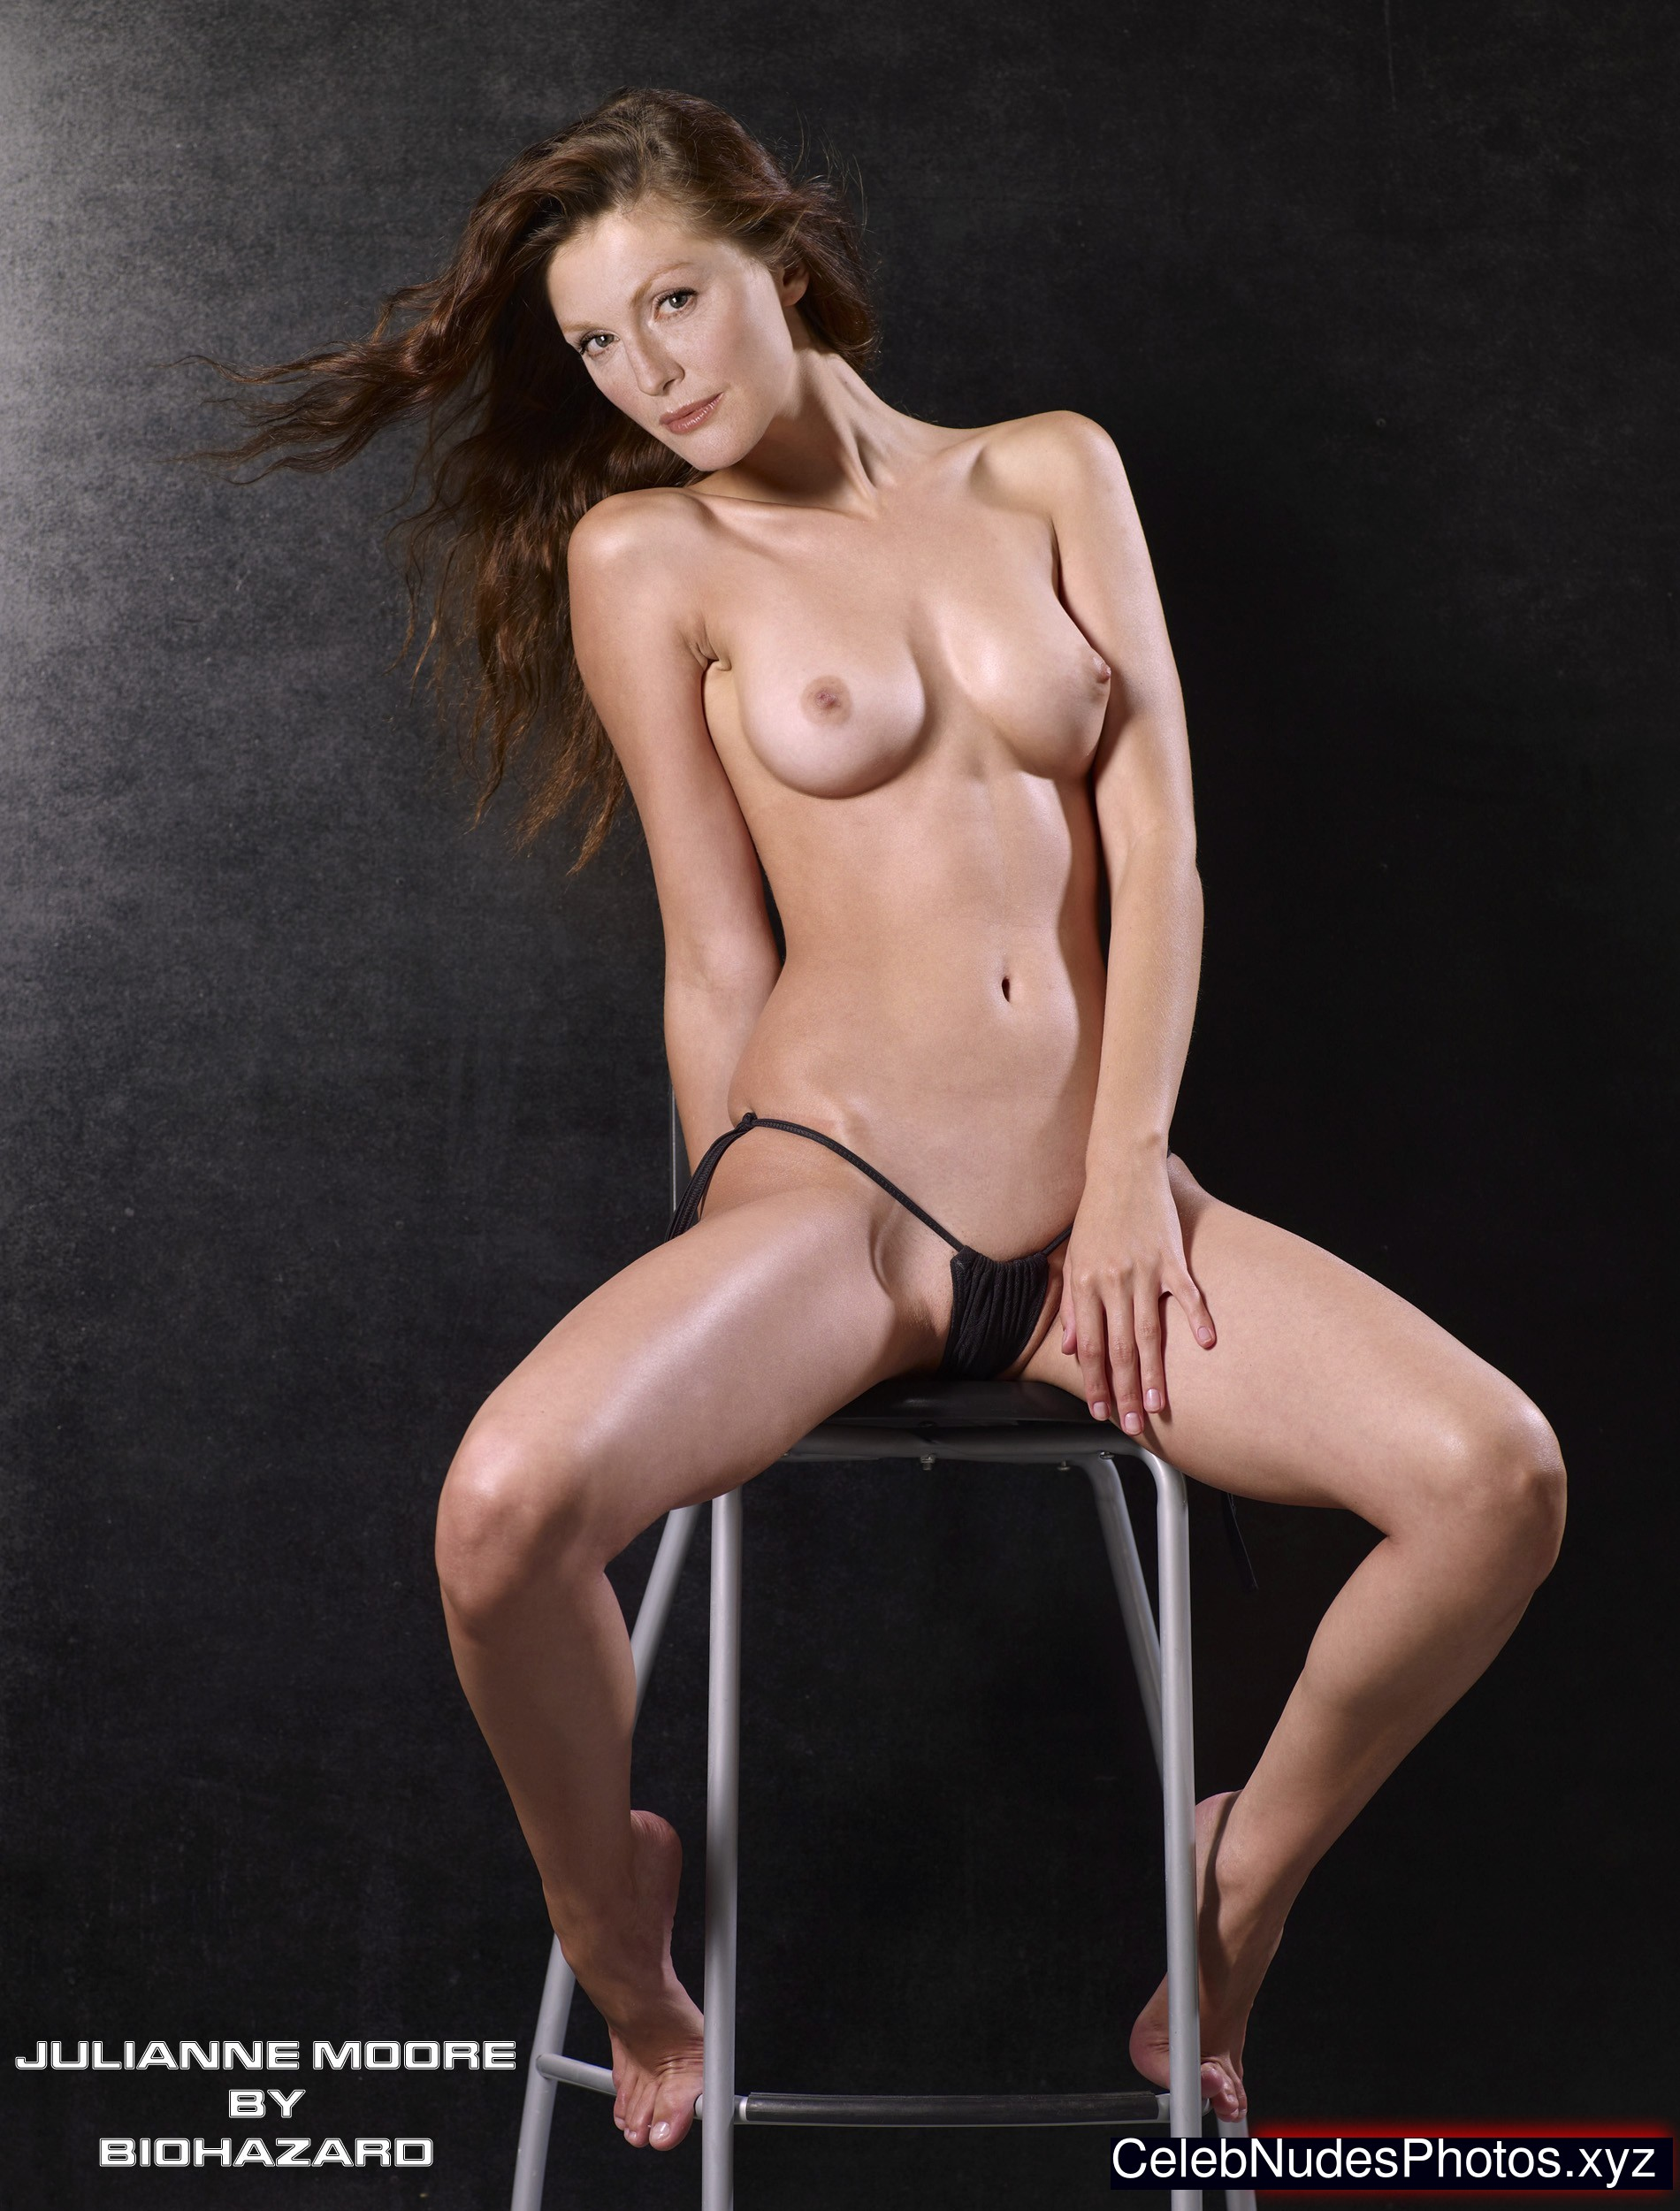 julliane moore young and nude